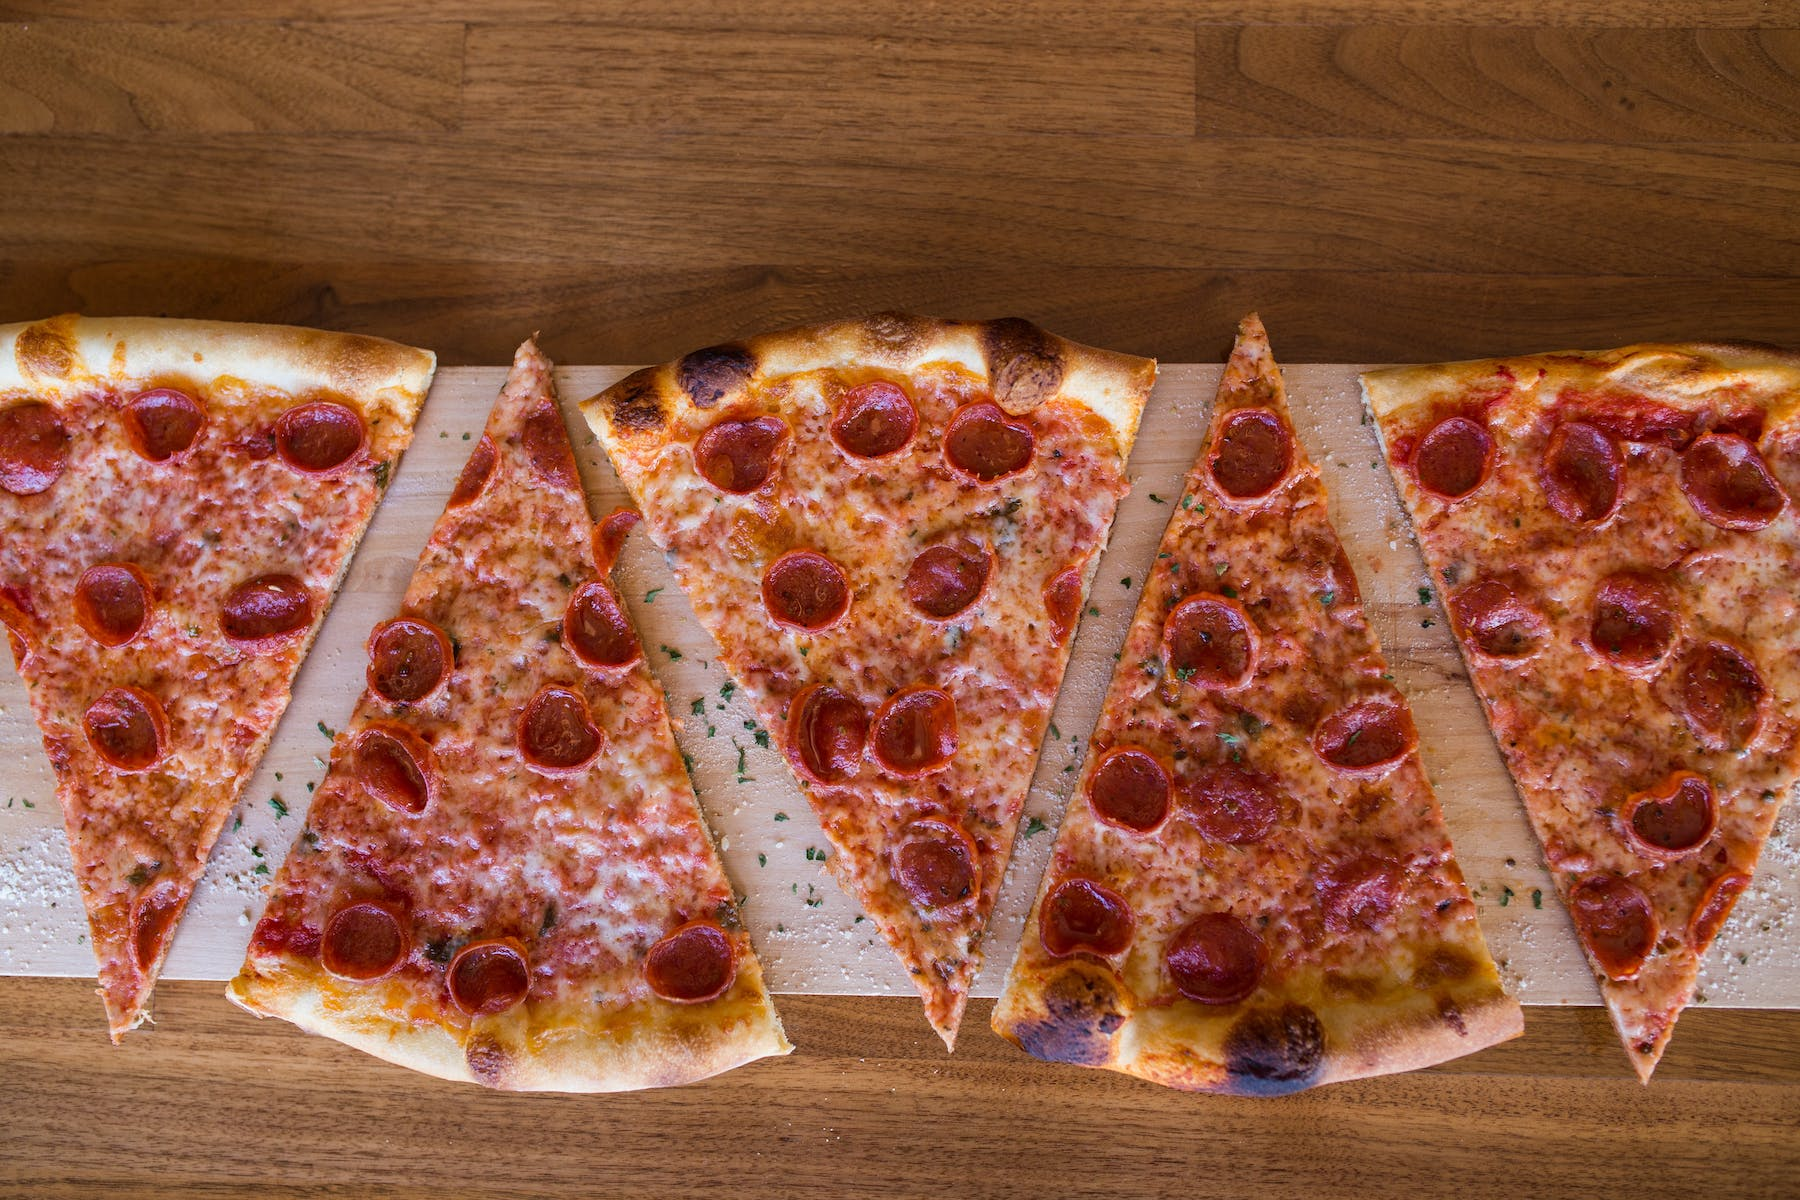 slices of pepperoni pizza on a table